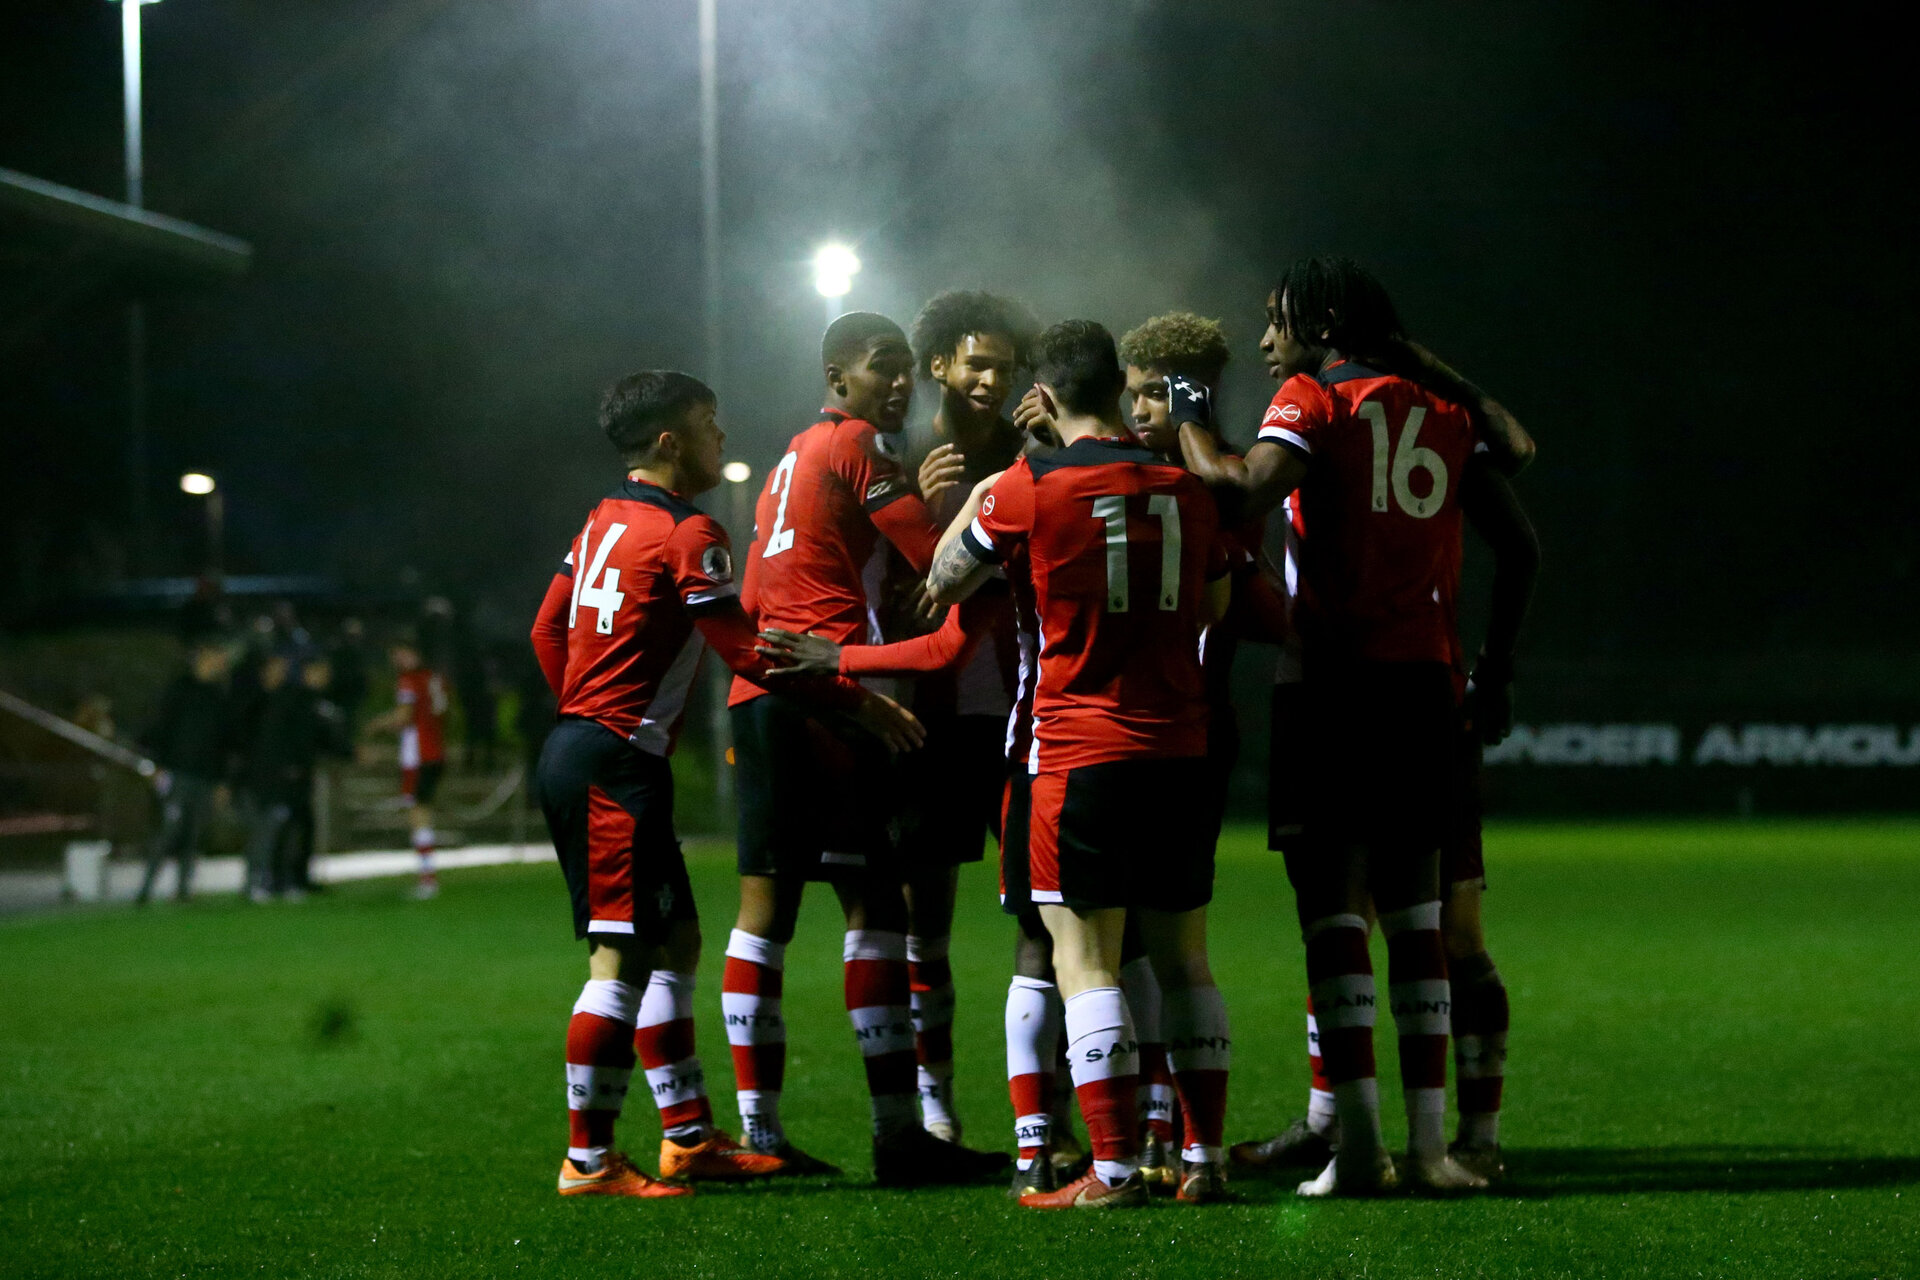 SOUTHAMPTON, ENGLAND - JANUARY 06: team goal celebration during the Premier League 2 match between Southampton U23 and Everton at Staplewood Training Ground on January 6, 2020 in Southampton, United Kingdom. (Photo by Isabelle Field/Southampton FC via Getty Images)